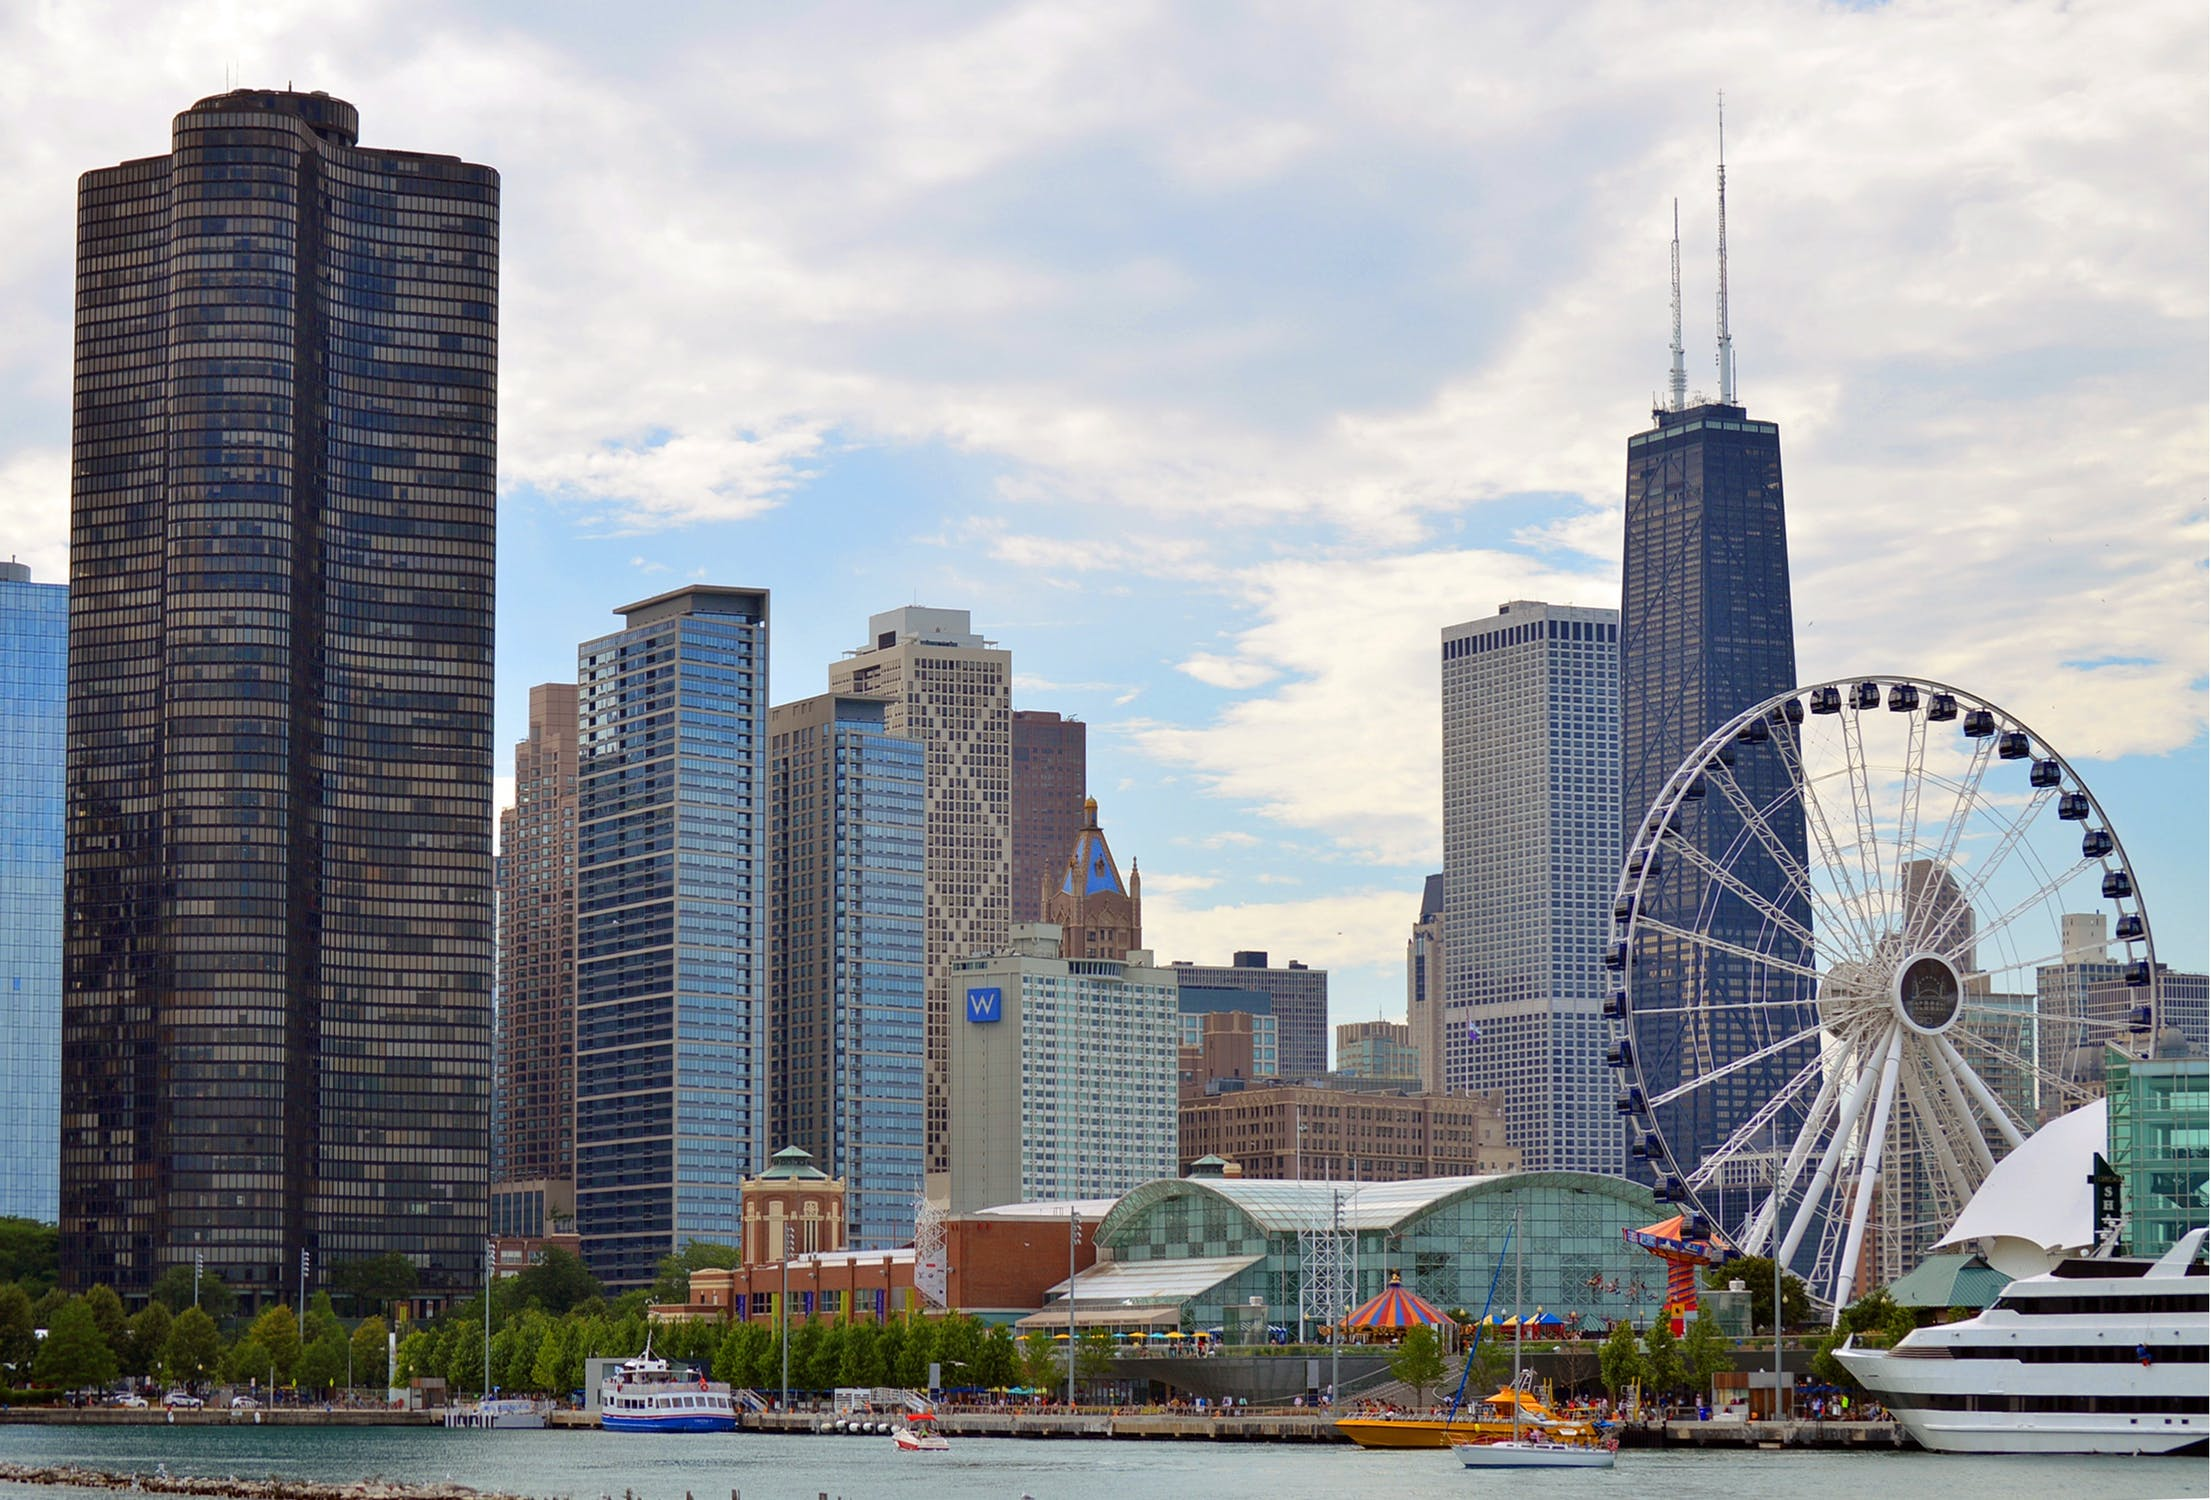 Experience Chicago Attractions Like Navy Pier during Summer Vacation